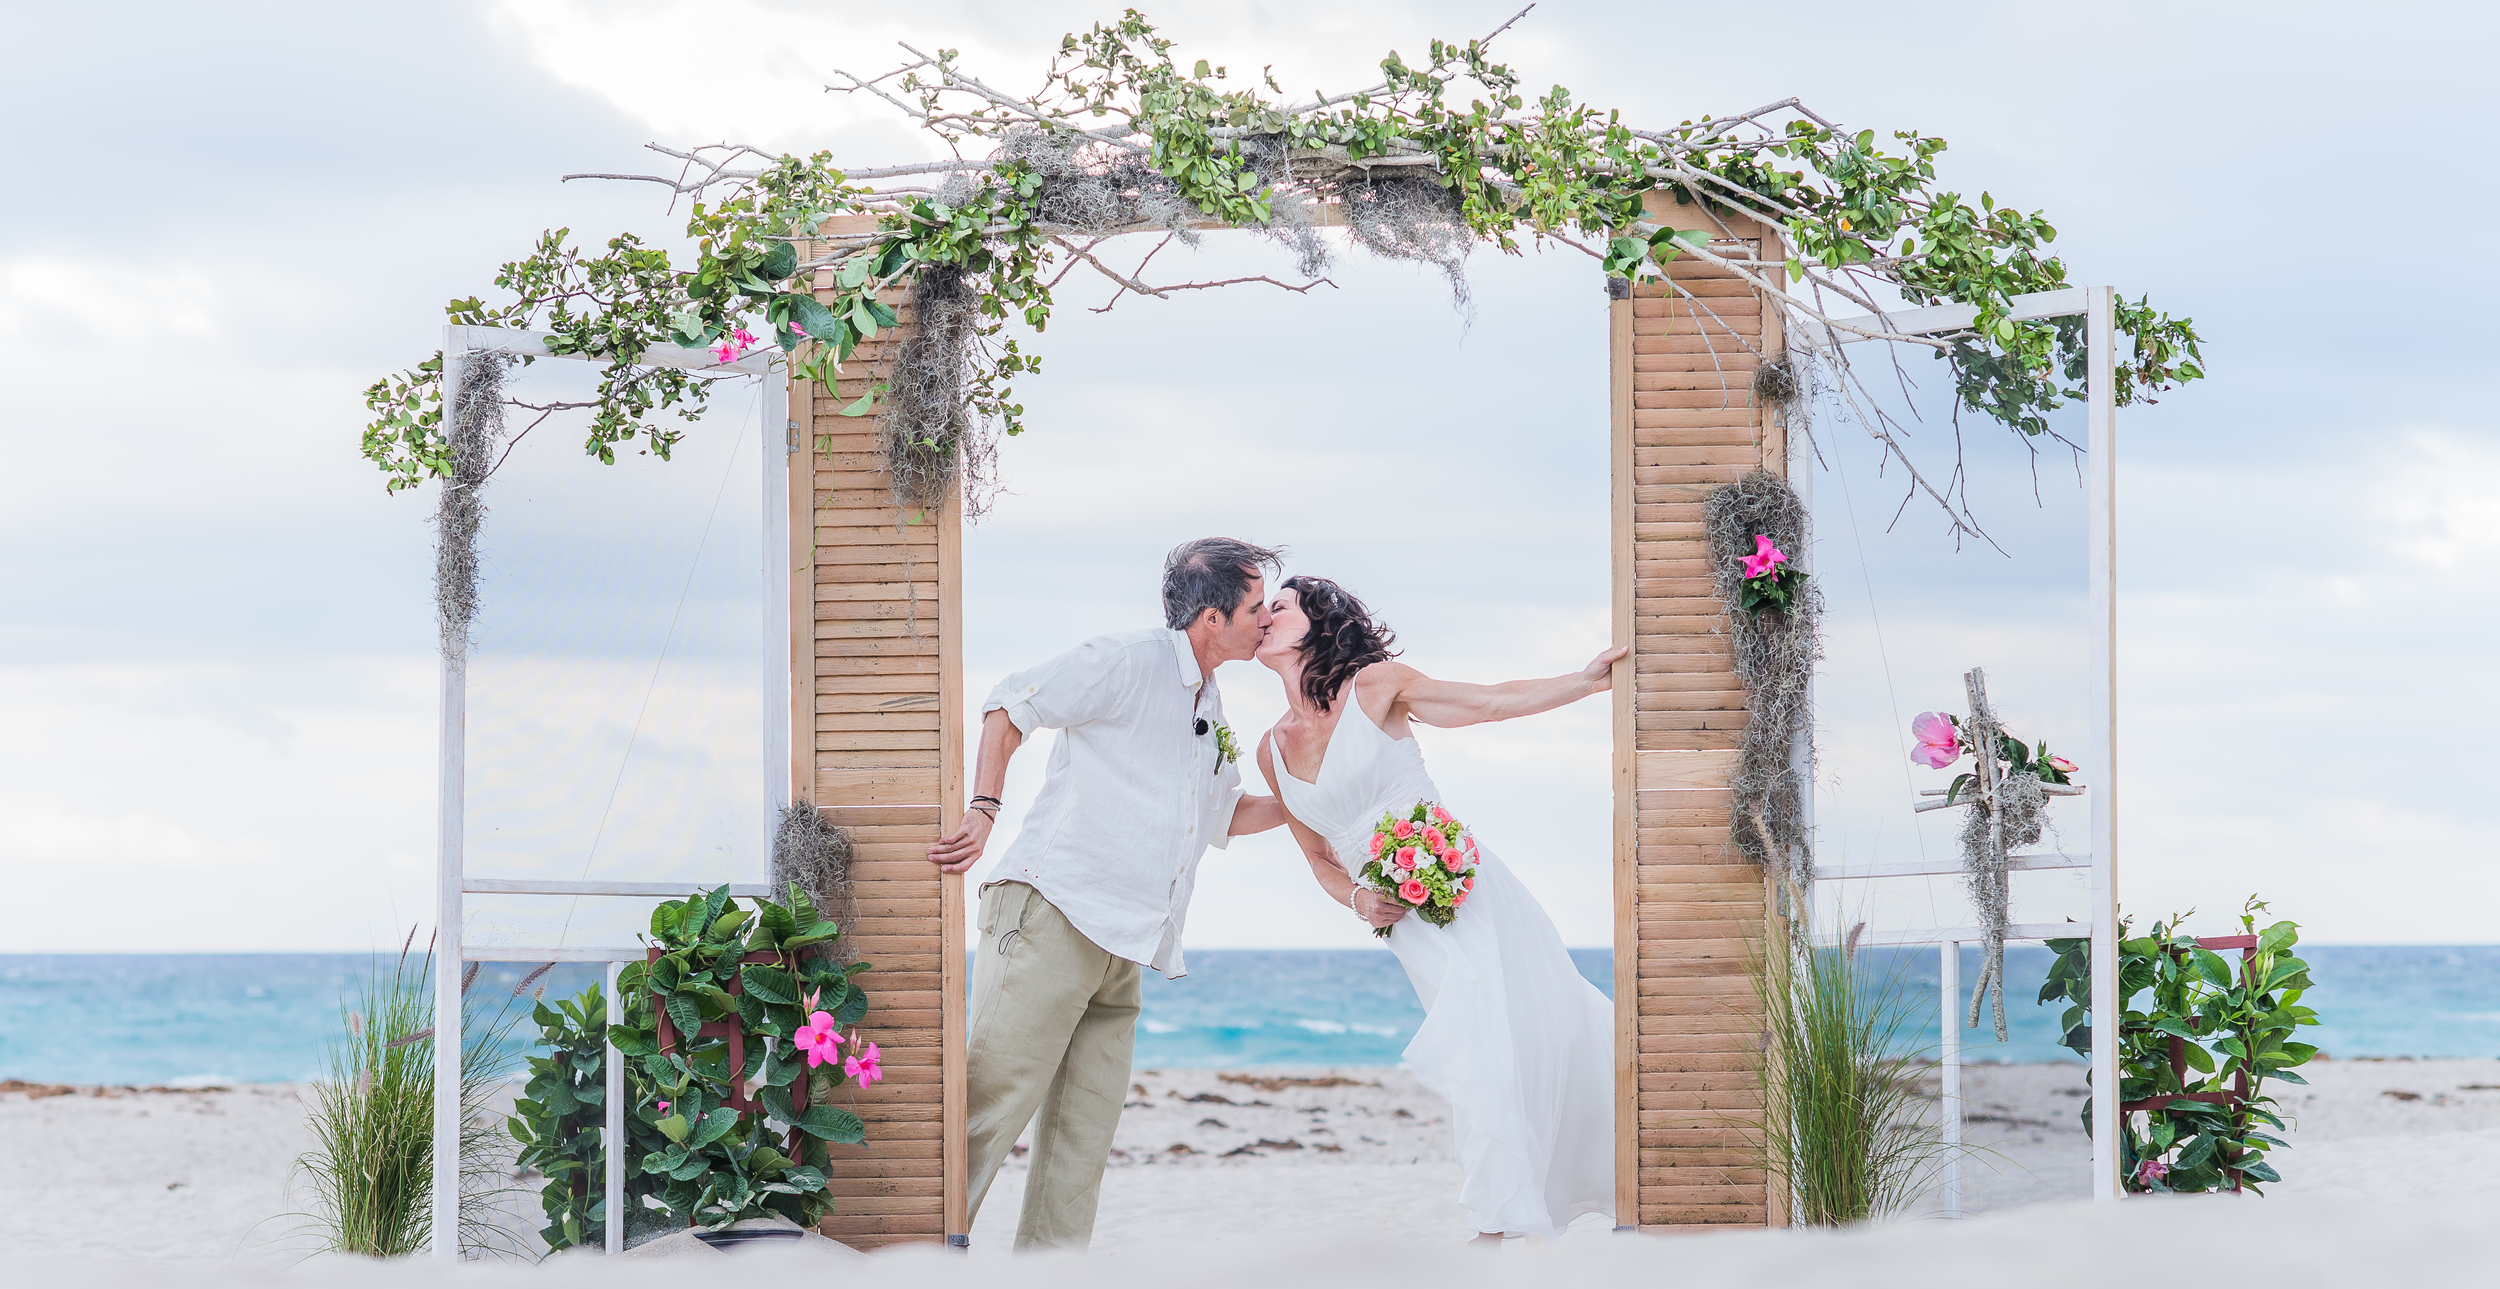 Tricia and Frank at their beautiful beach wedding on Singer Island, Florida.